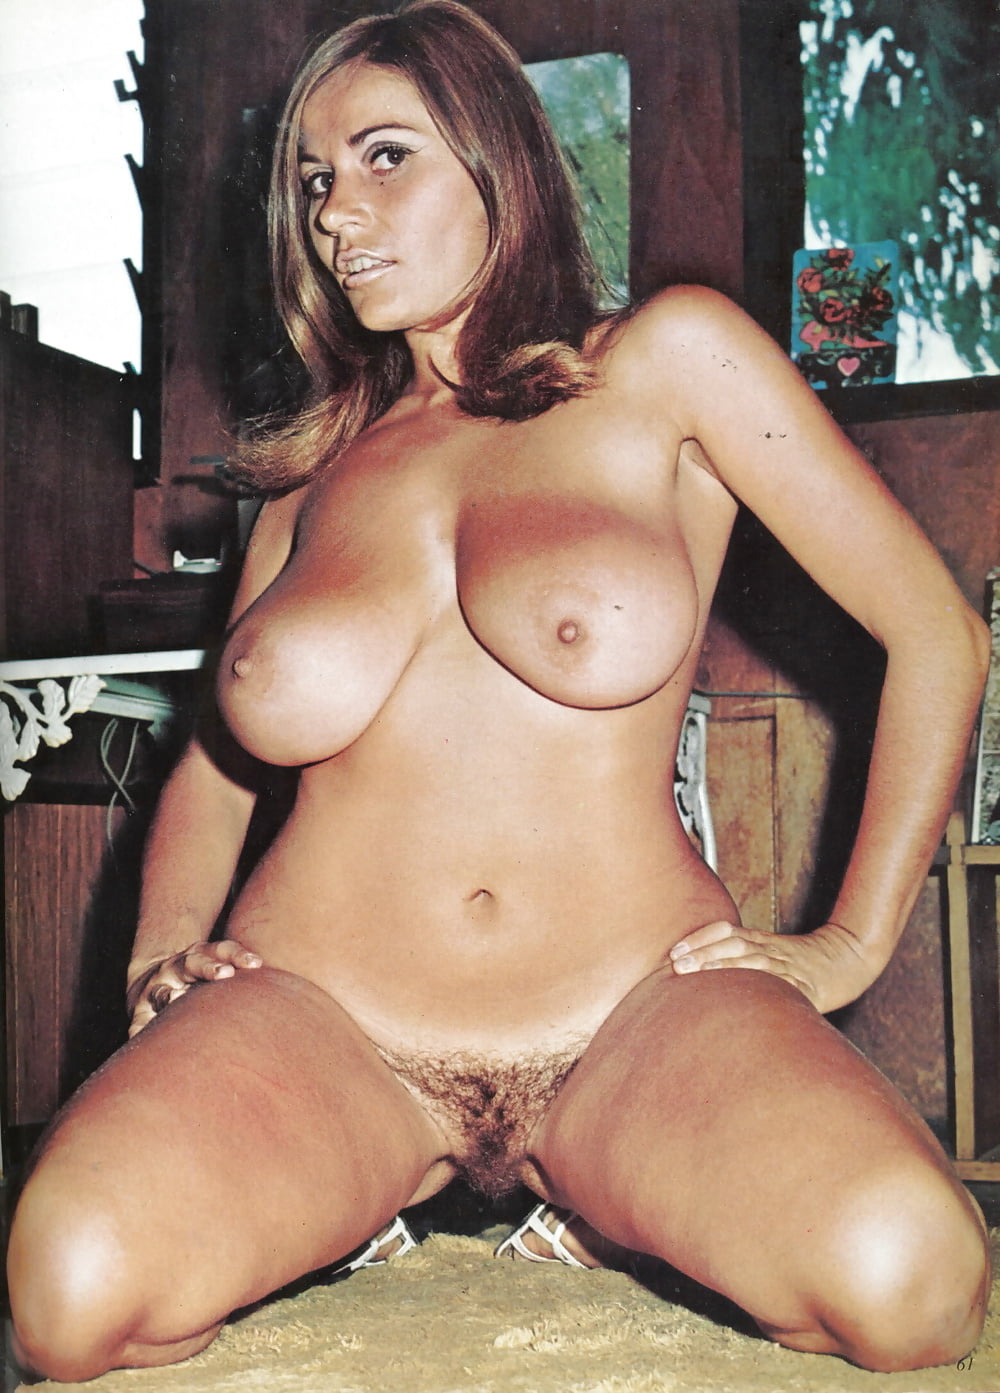 Uschi digard nude bush and sex sharon kelly, shari eubank and others nude